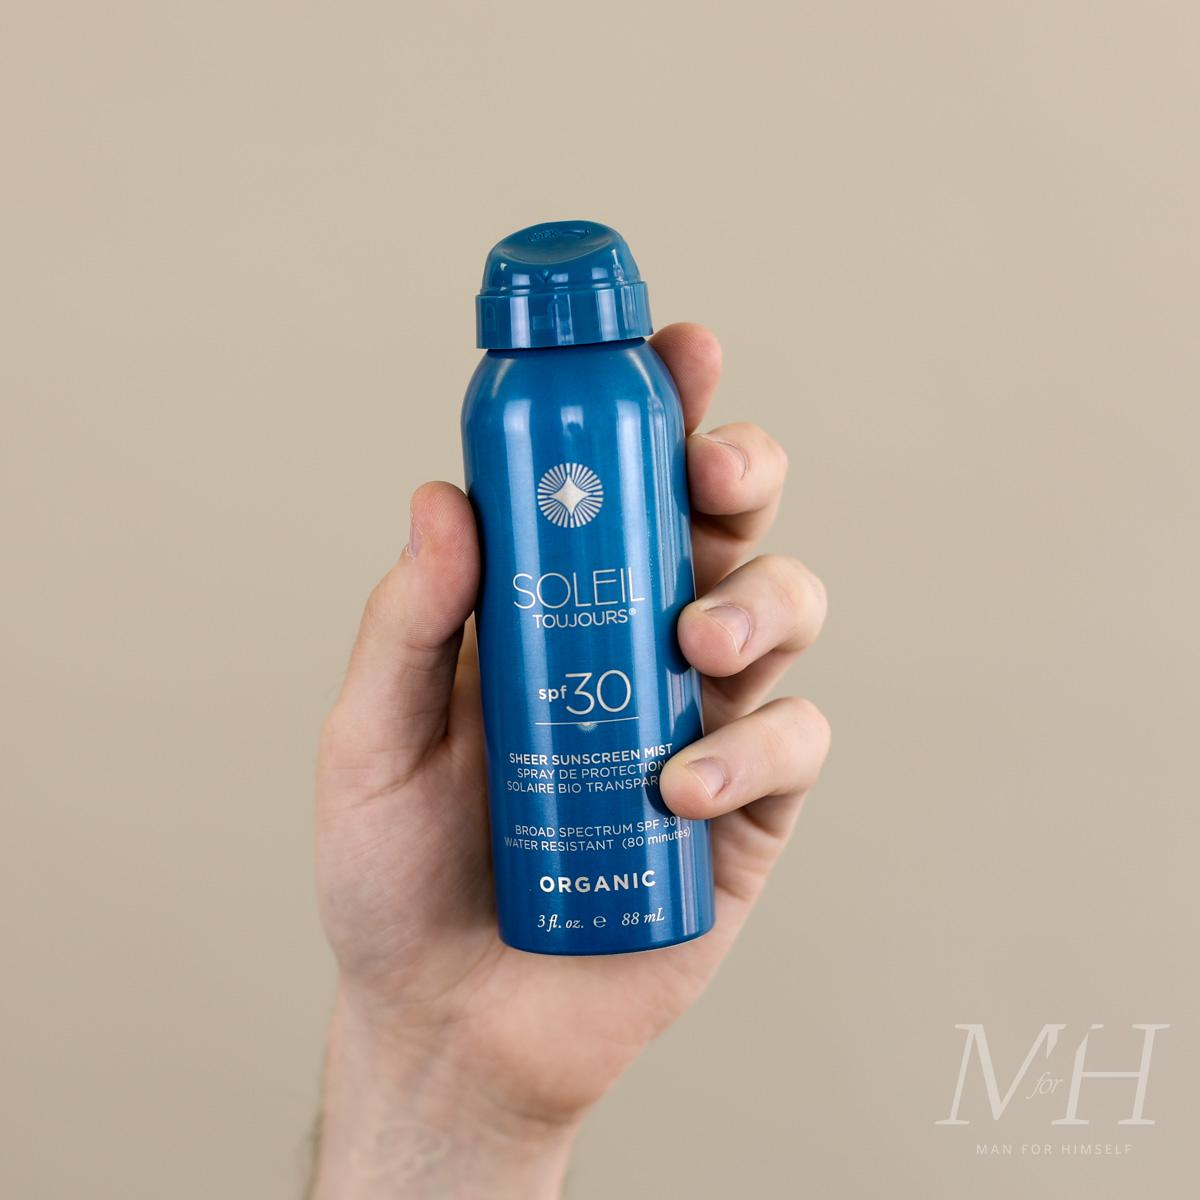 soleil-toujours-spf-product-review-man-for-himself